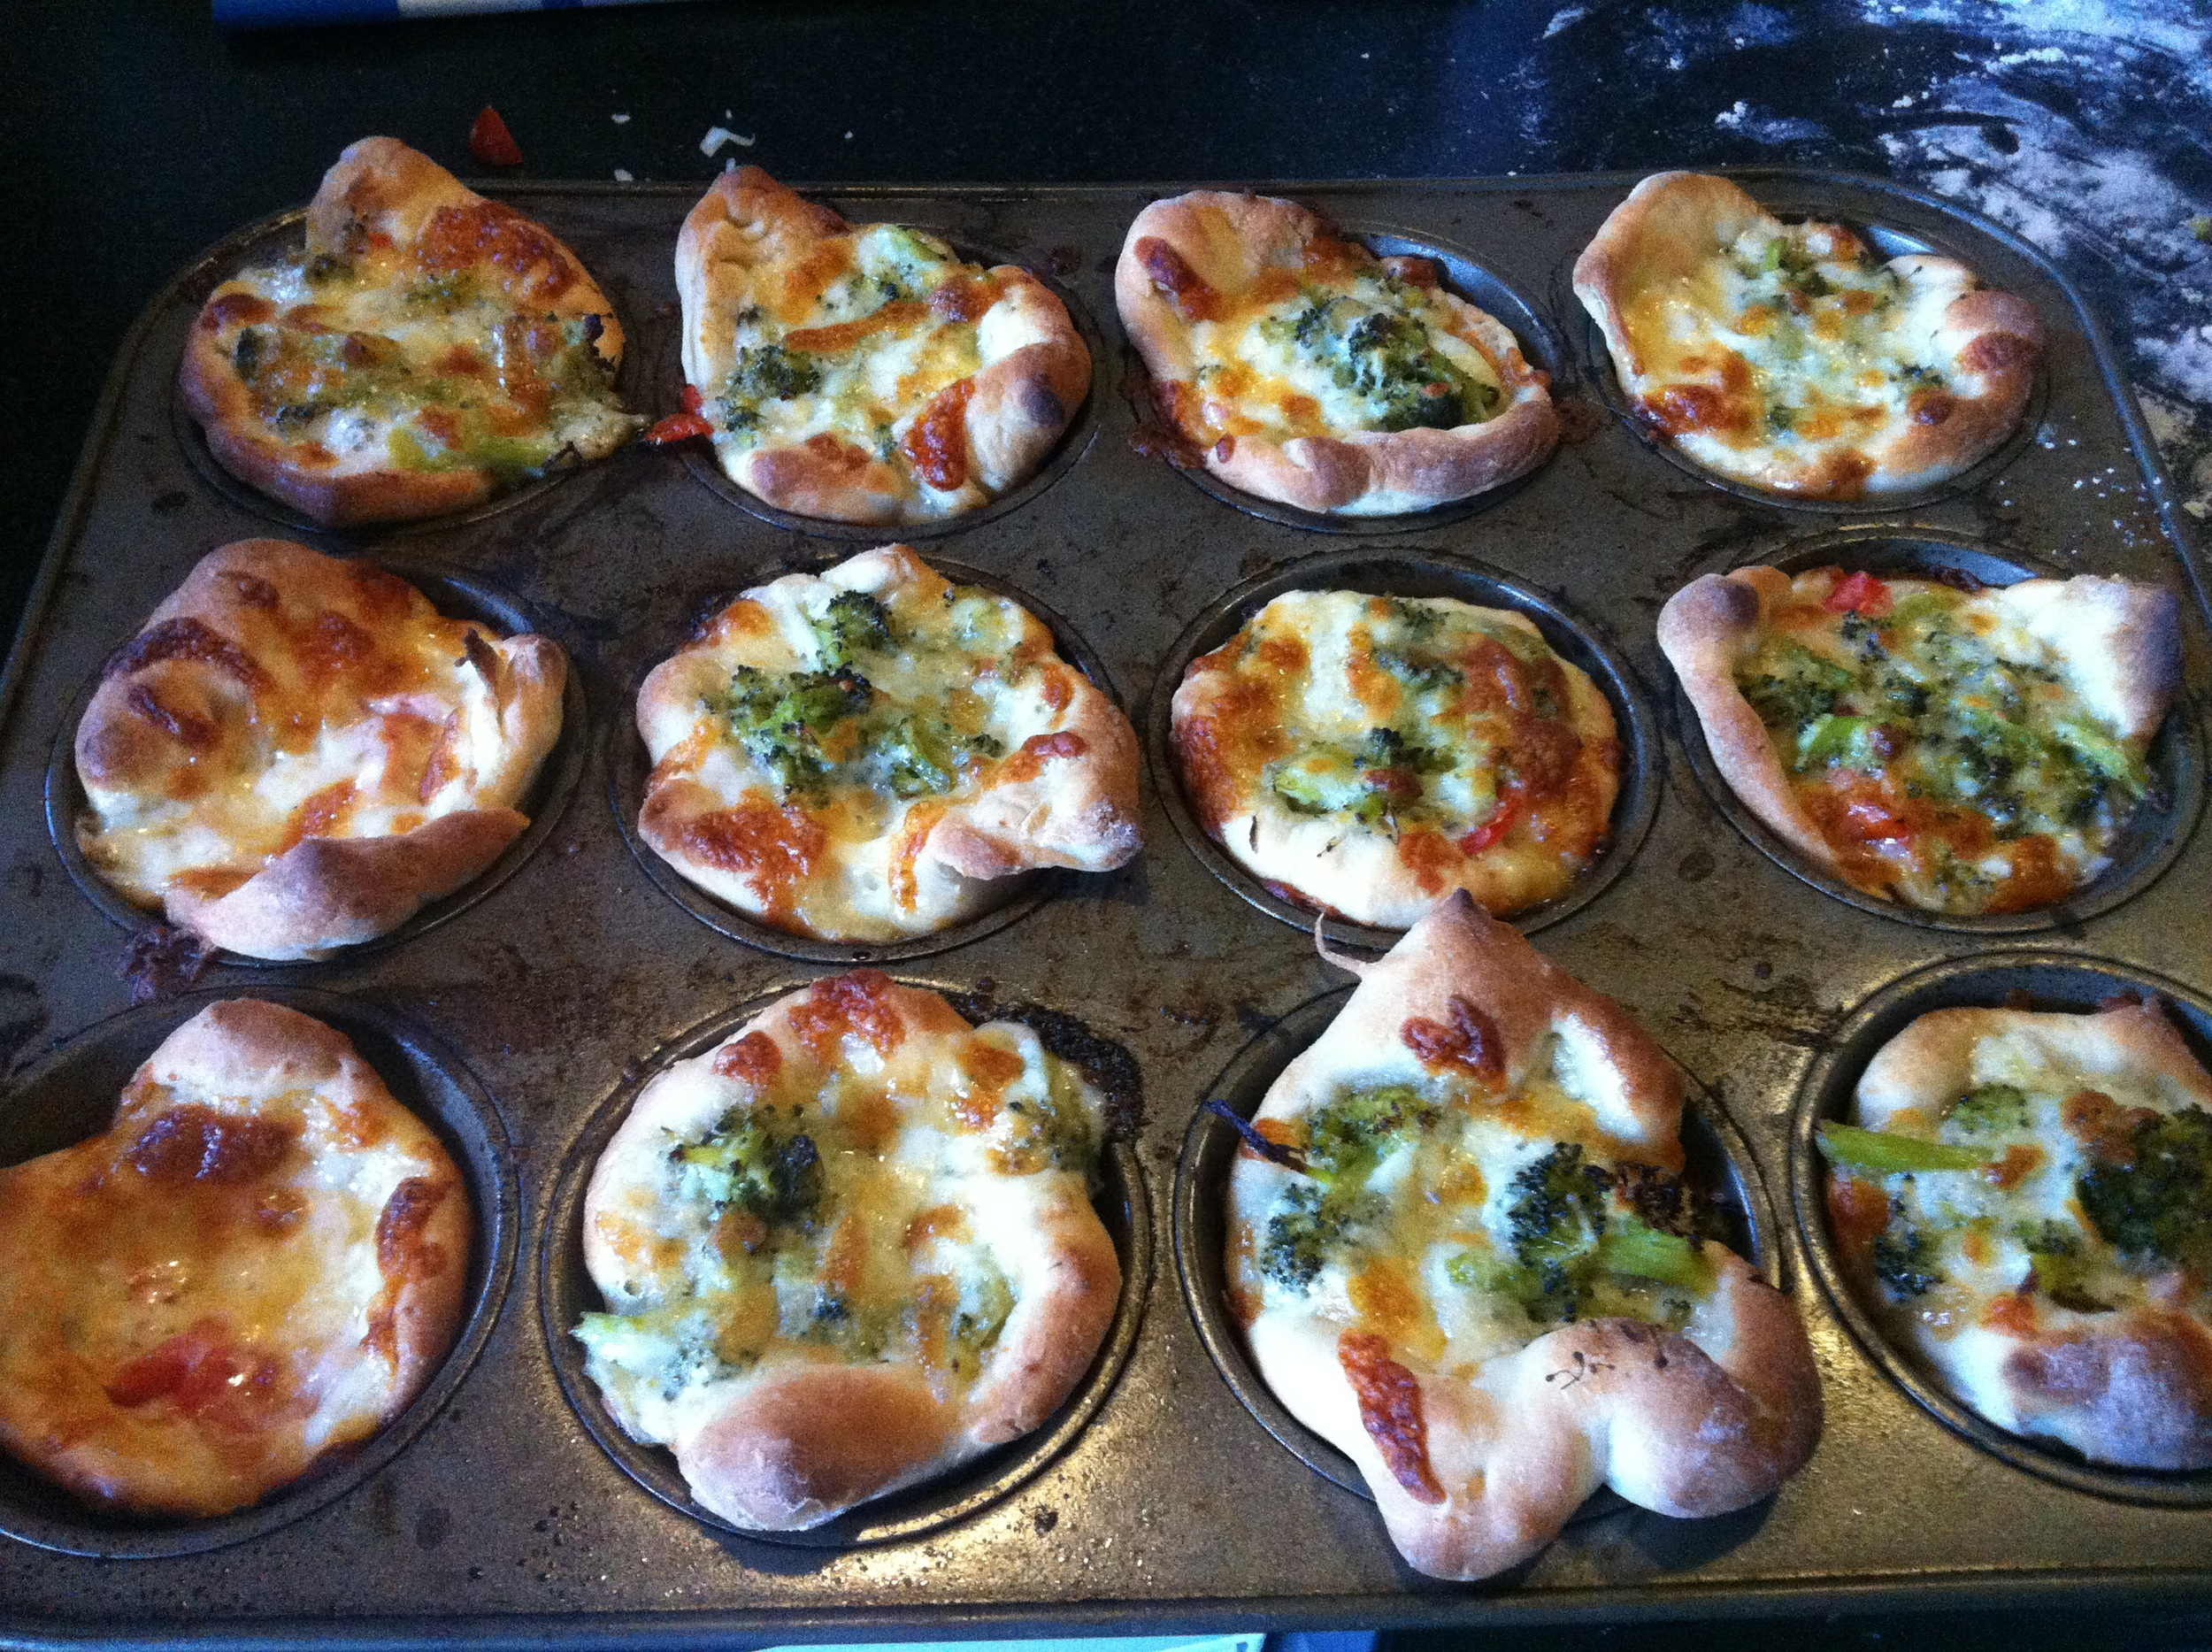 Pizzas made as if they were awesome little muffins. How freakin' cute are they?!